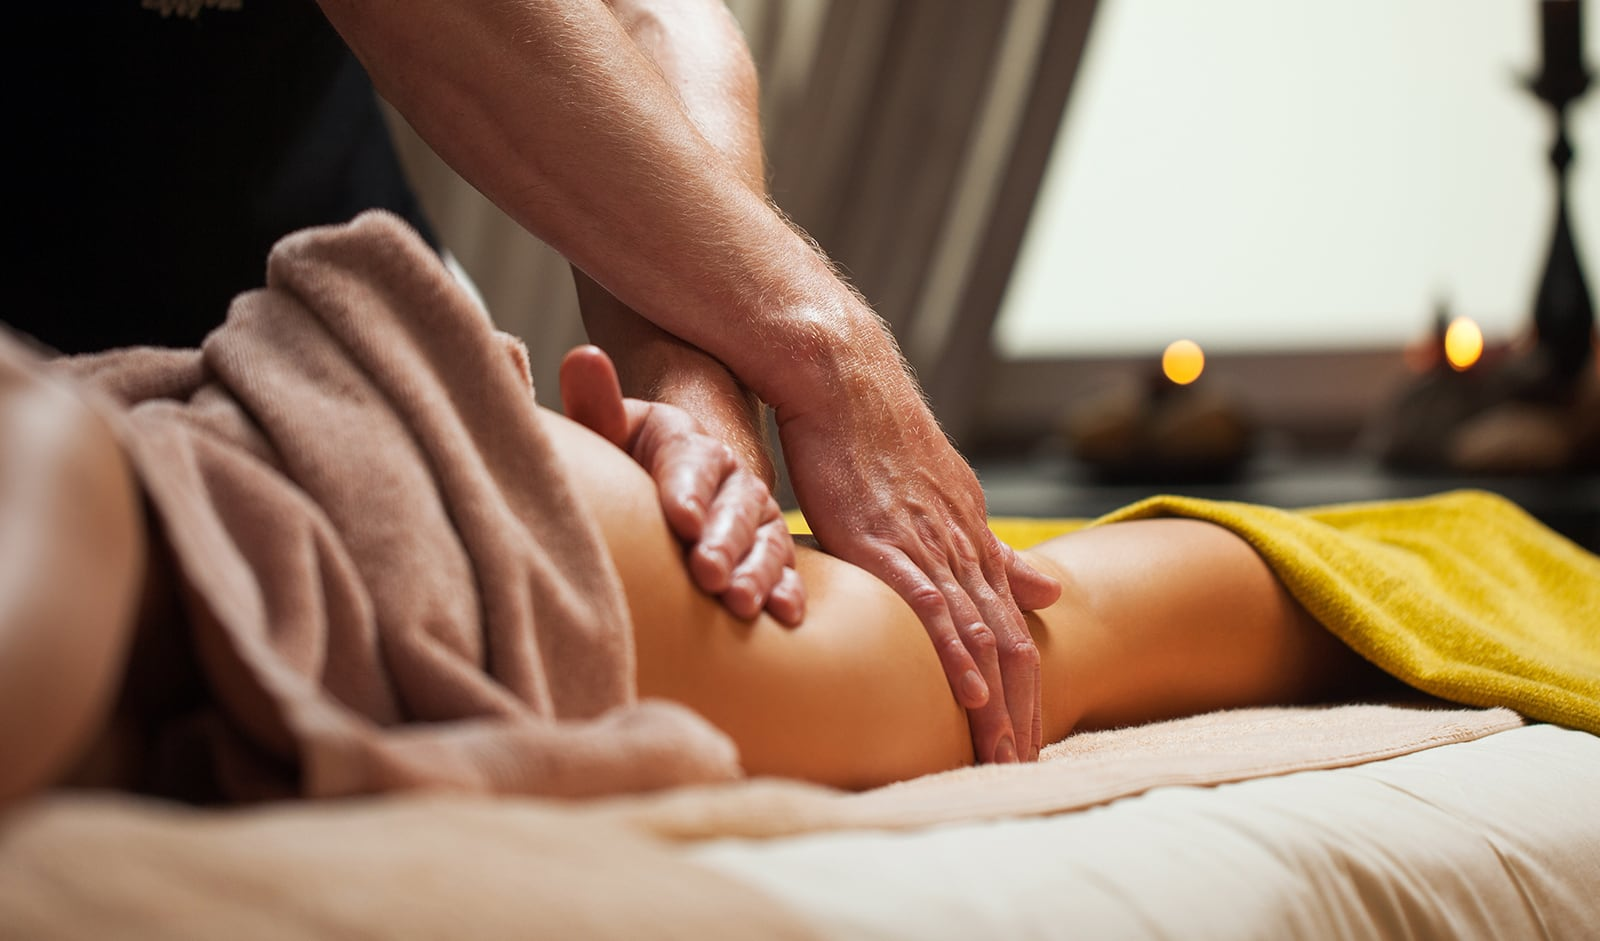 Demonstration of Swedish massage course